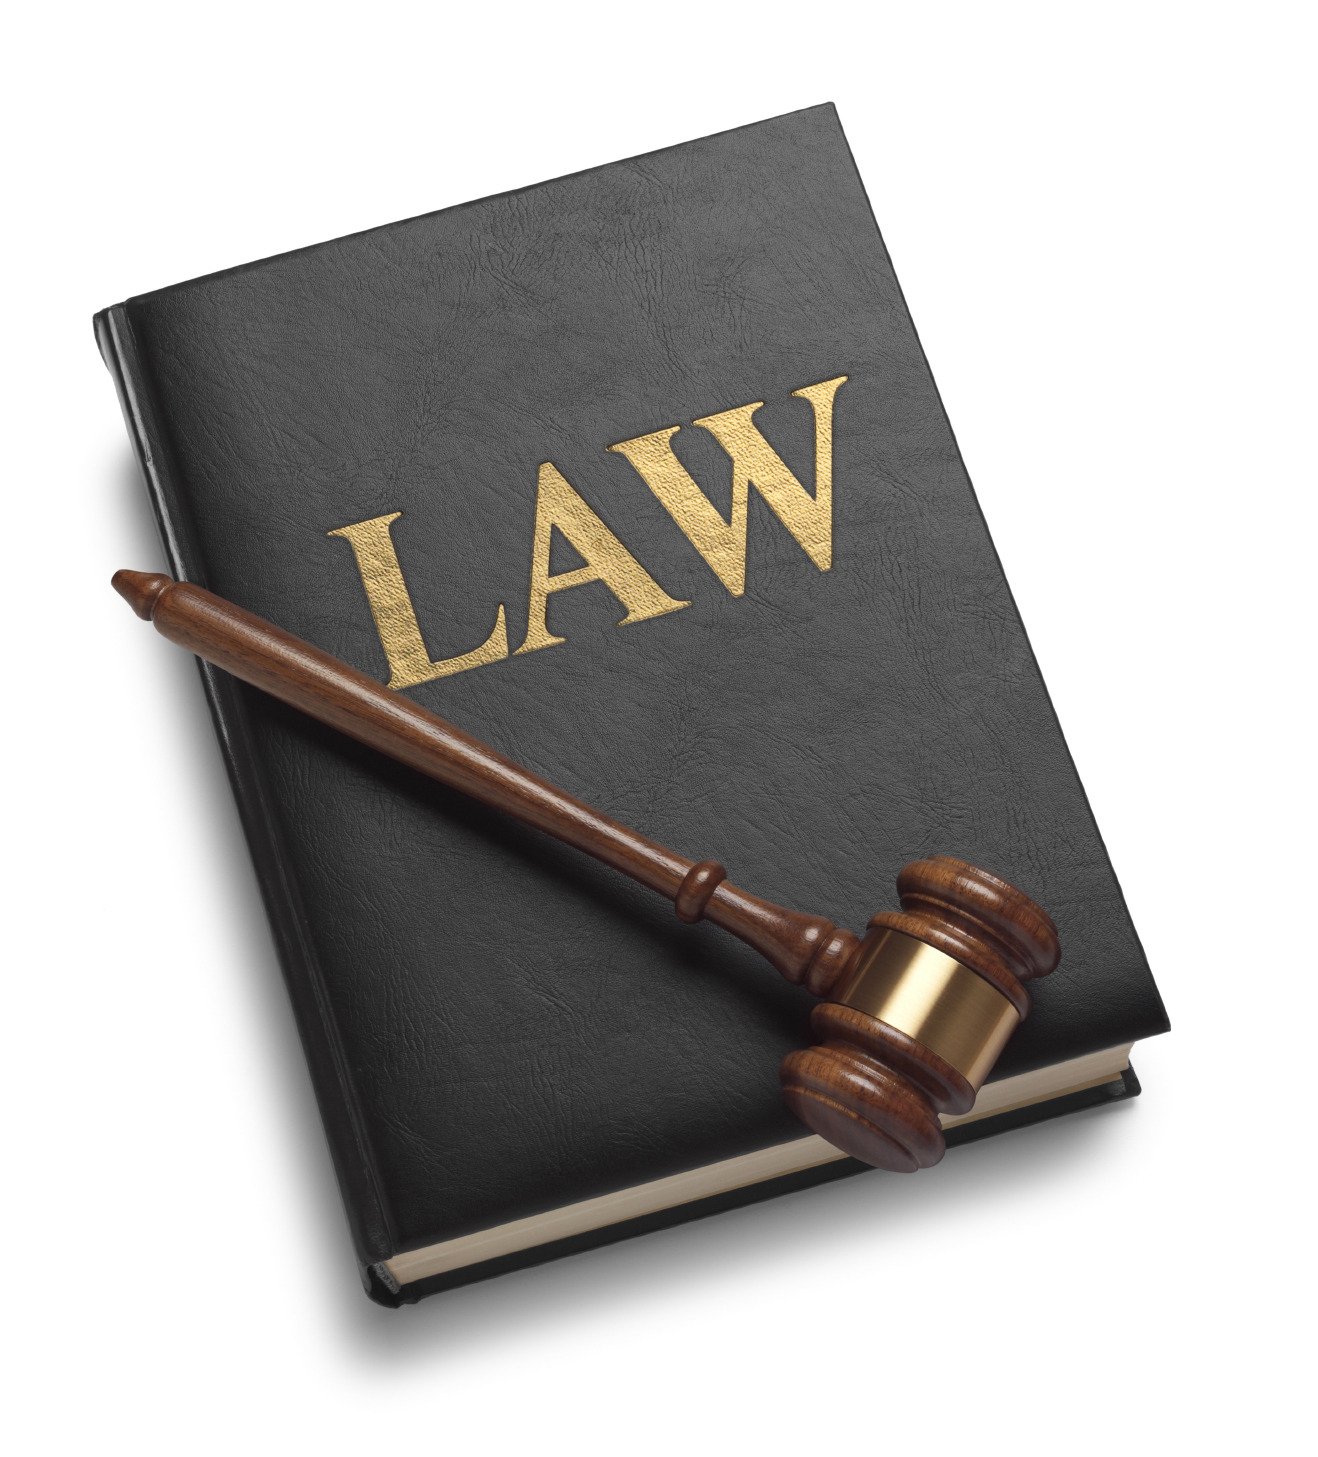 advice on wsh legal compliance issues Find out what workplace health and safety (whs, previously ohs) you may wish to seek independent legal advice on what is applicable to your situation.